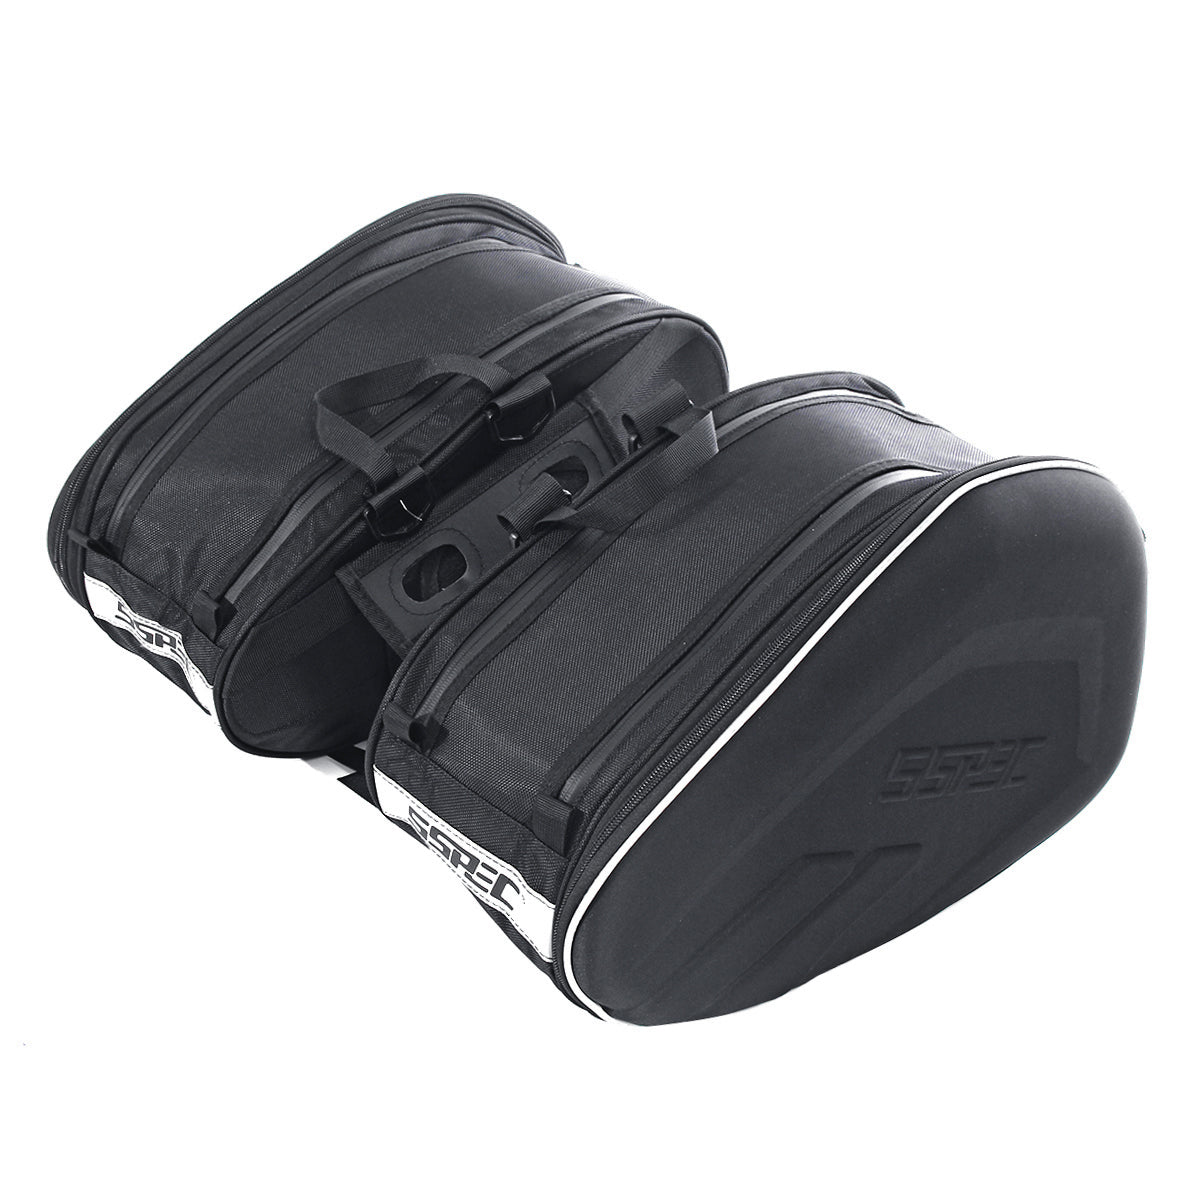 Saddlebags Rear Bag Package Multifunction Saddle Shoulder with Waterproof Cover